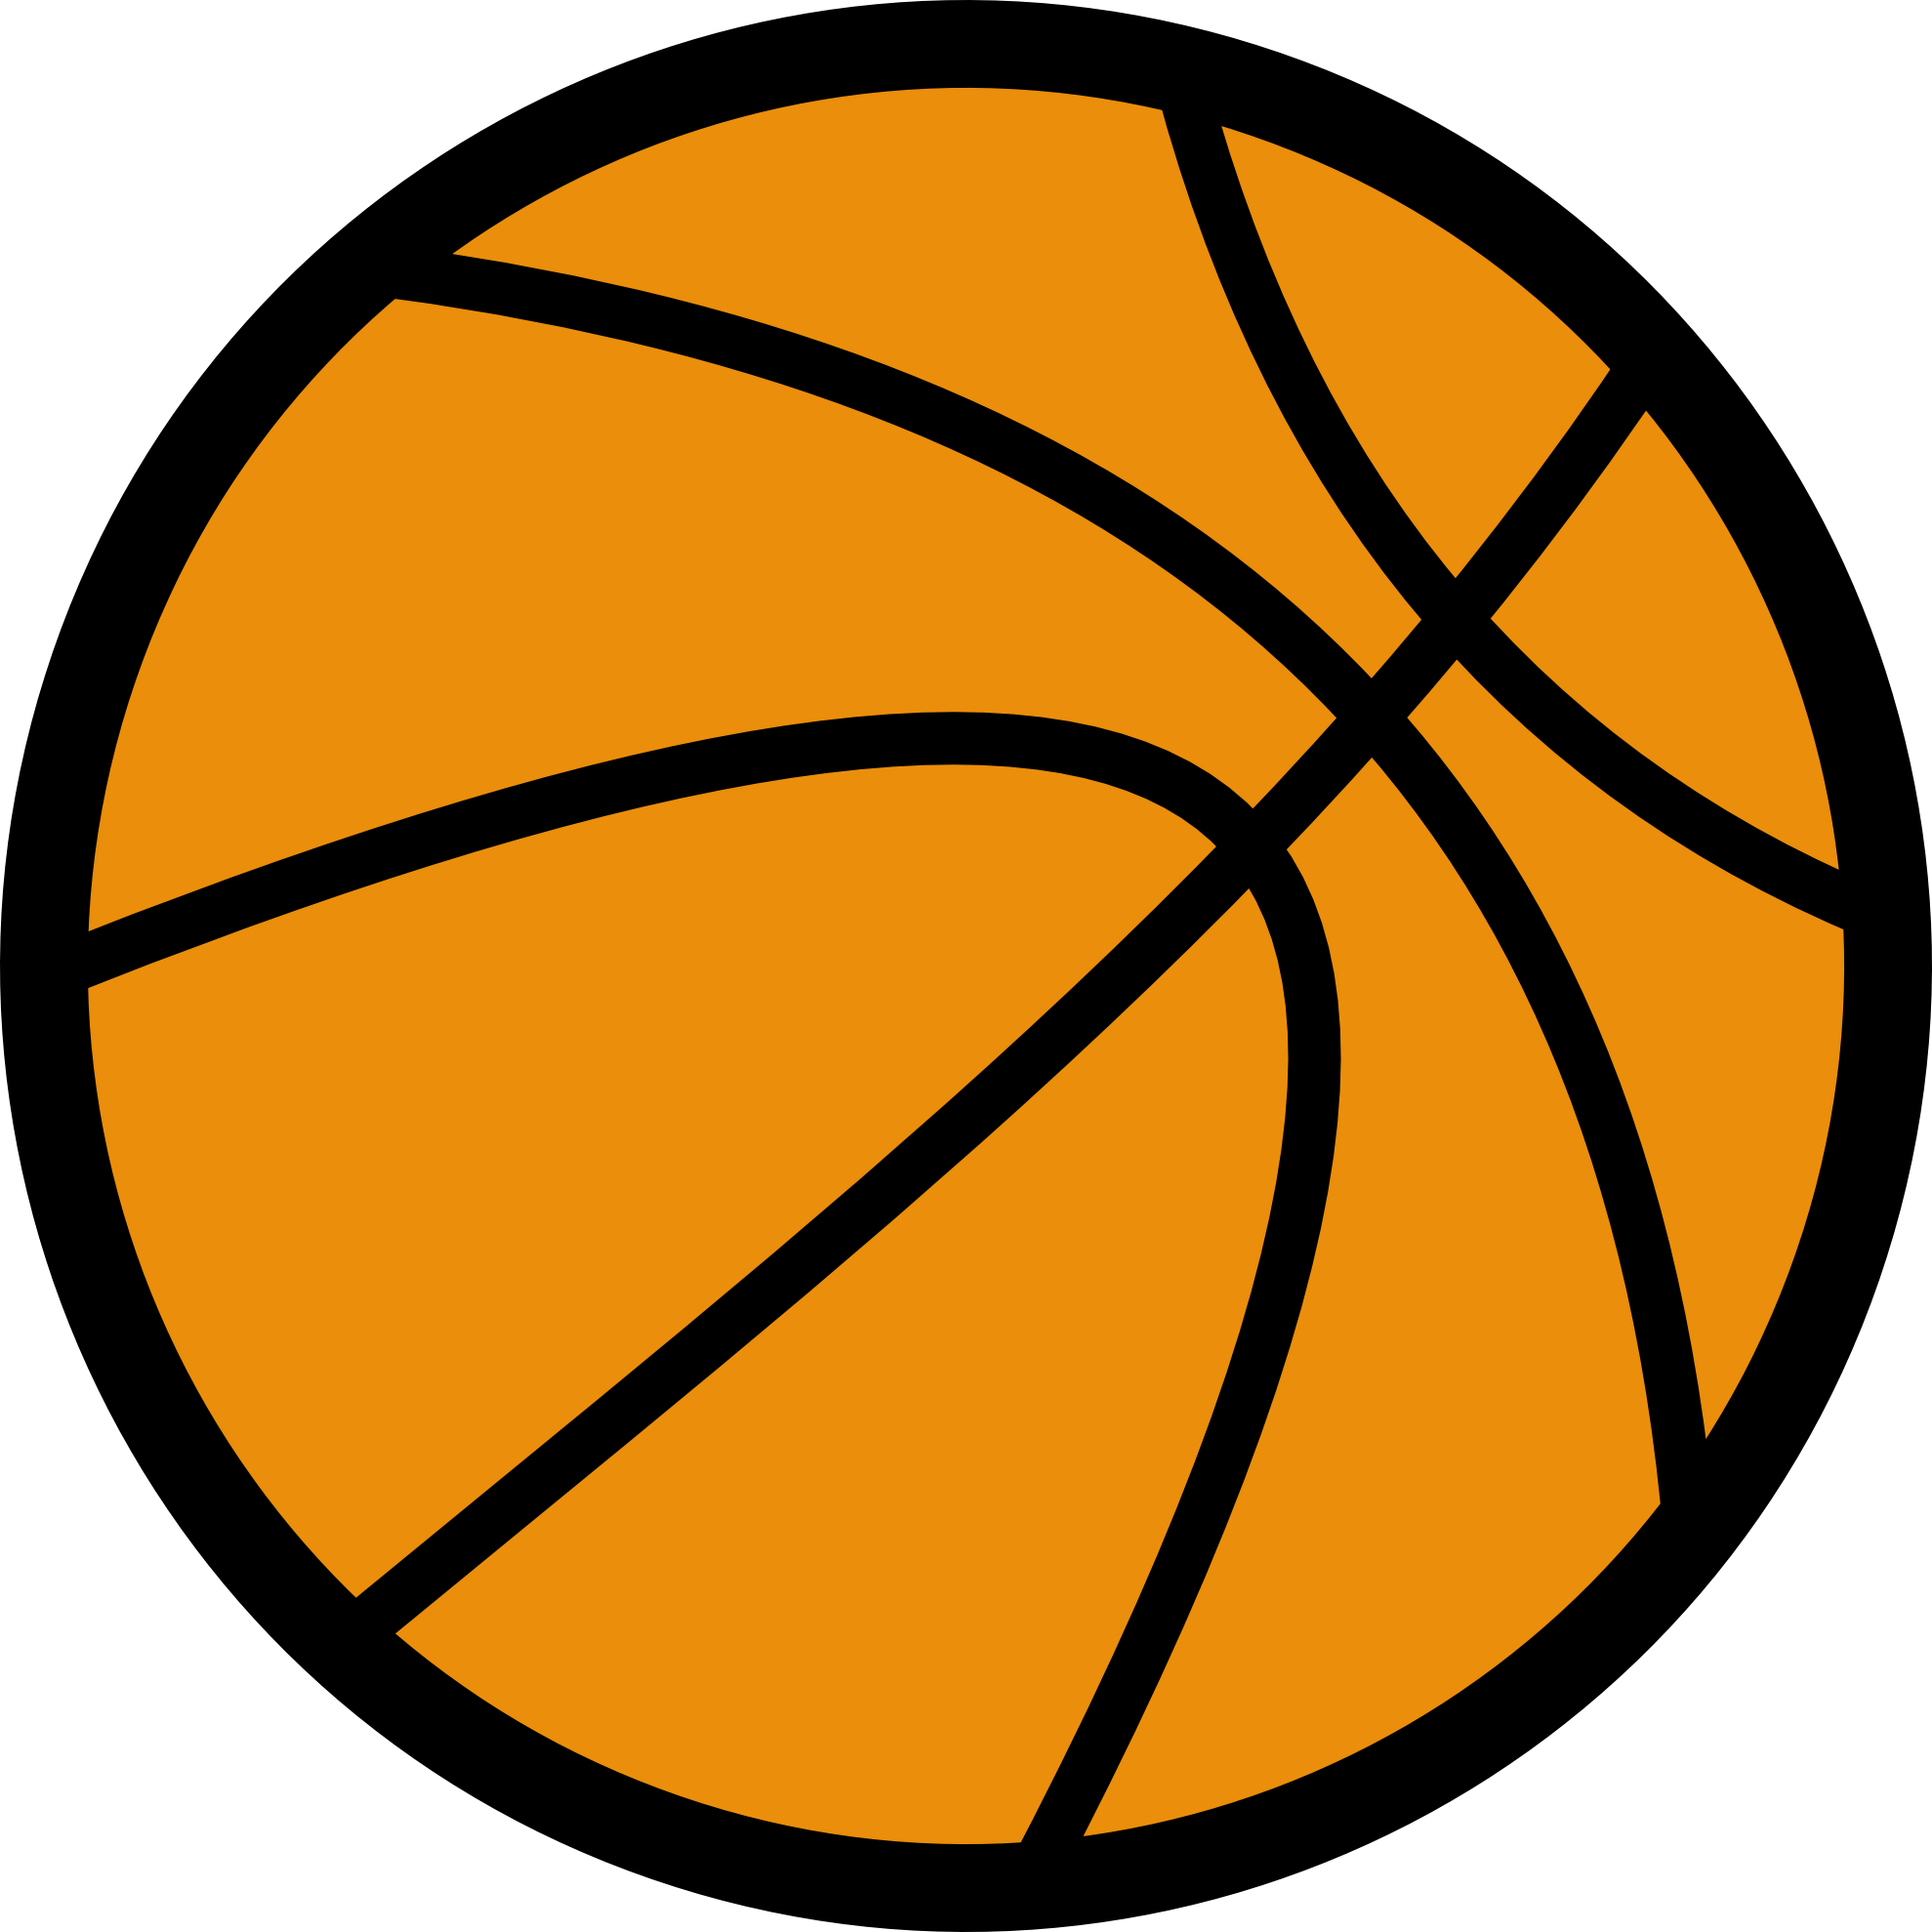 Remarkable Basketball Logo Clipart 85 On Logo Design Ideas with Basketball  Logo Clipart - Basketball HD PNG